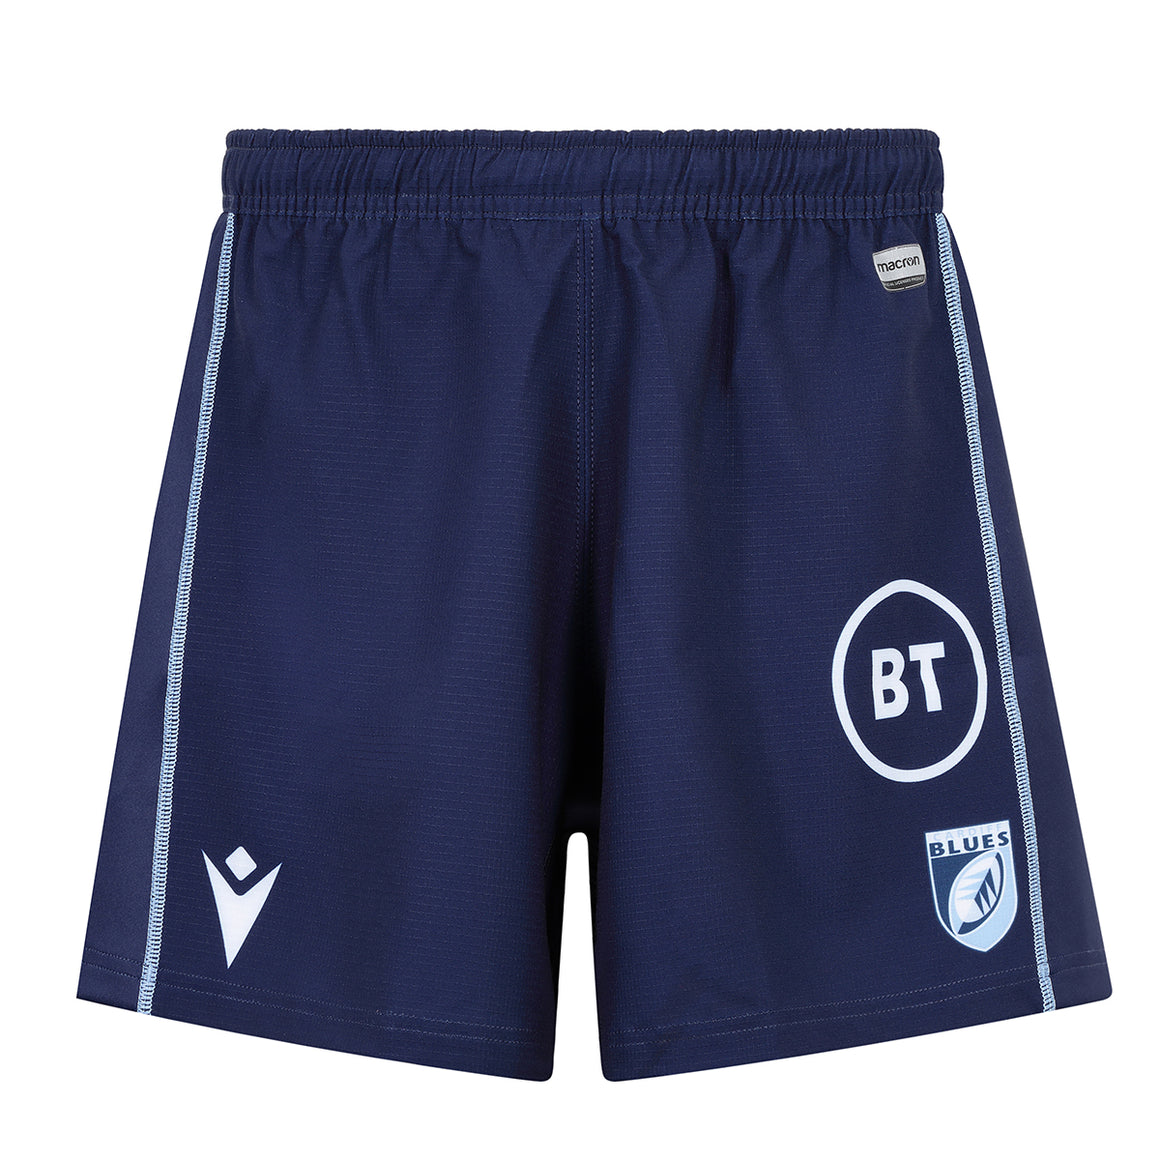 Replica Home Shorts Adult 19/20